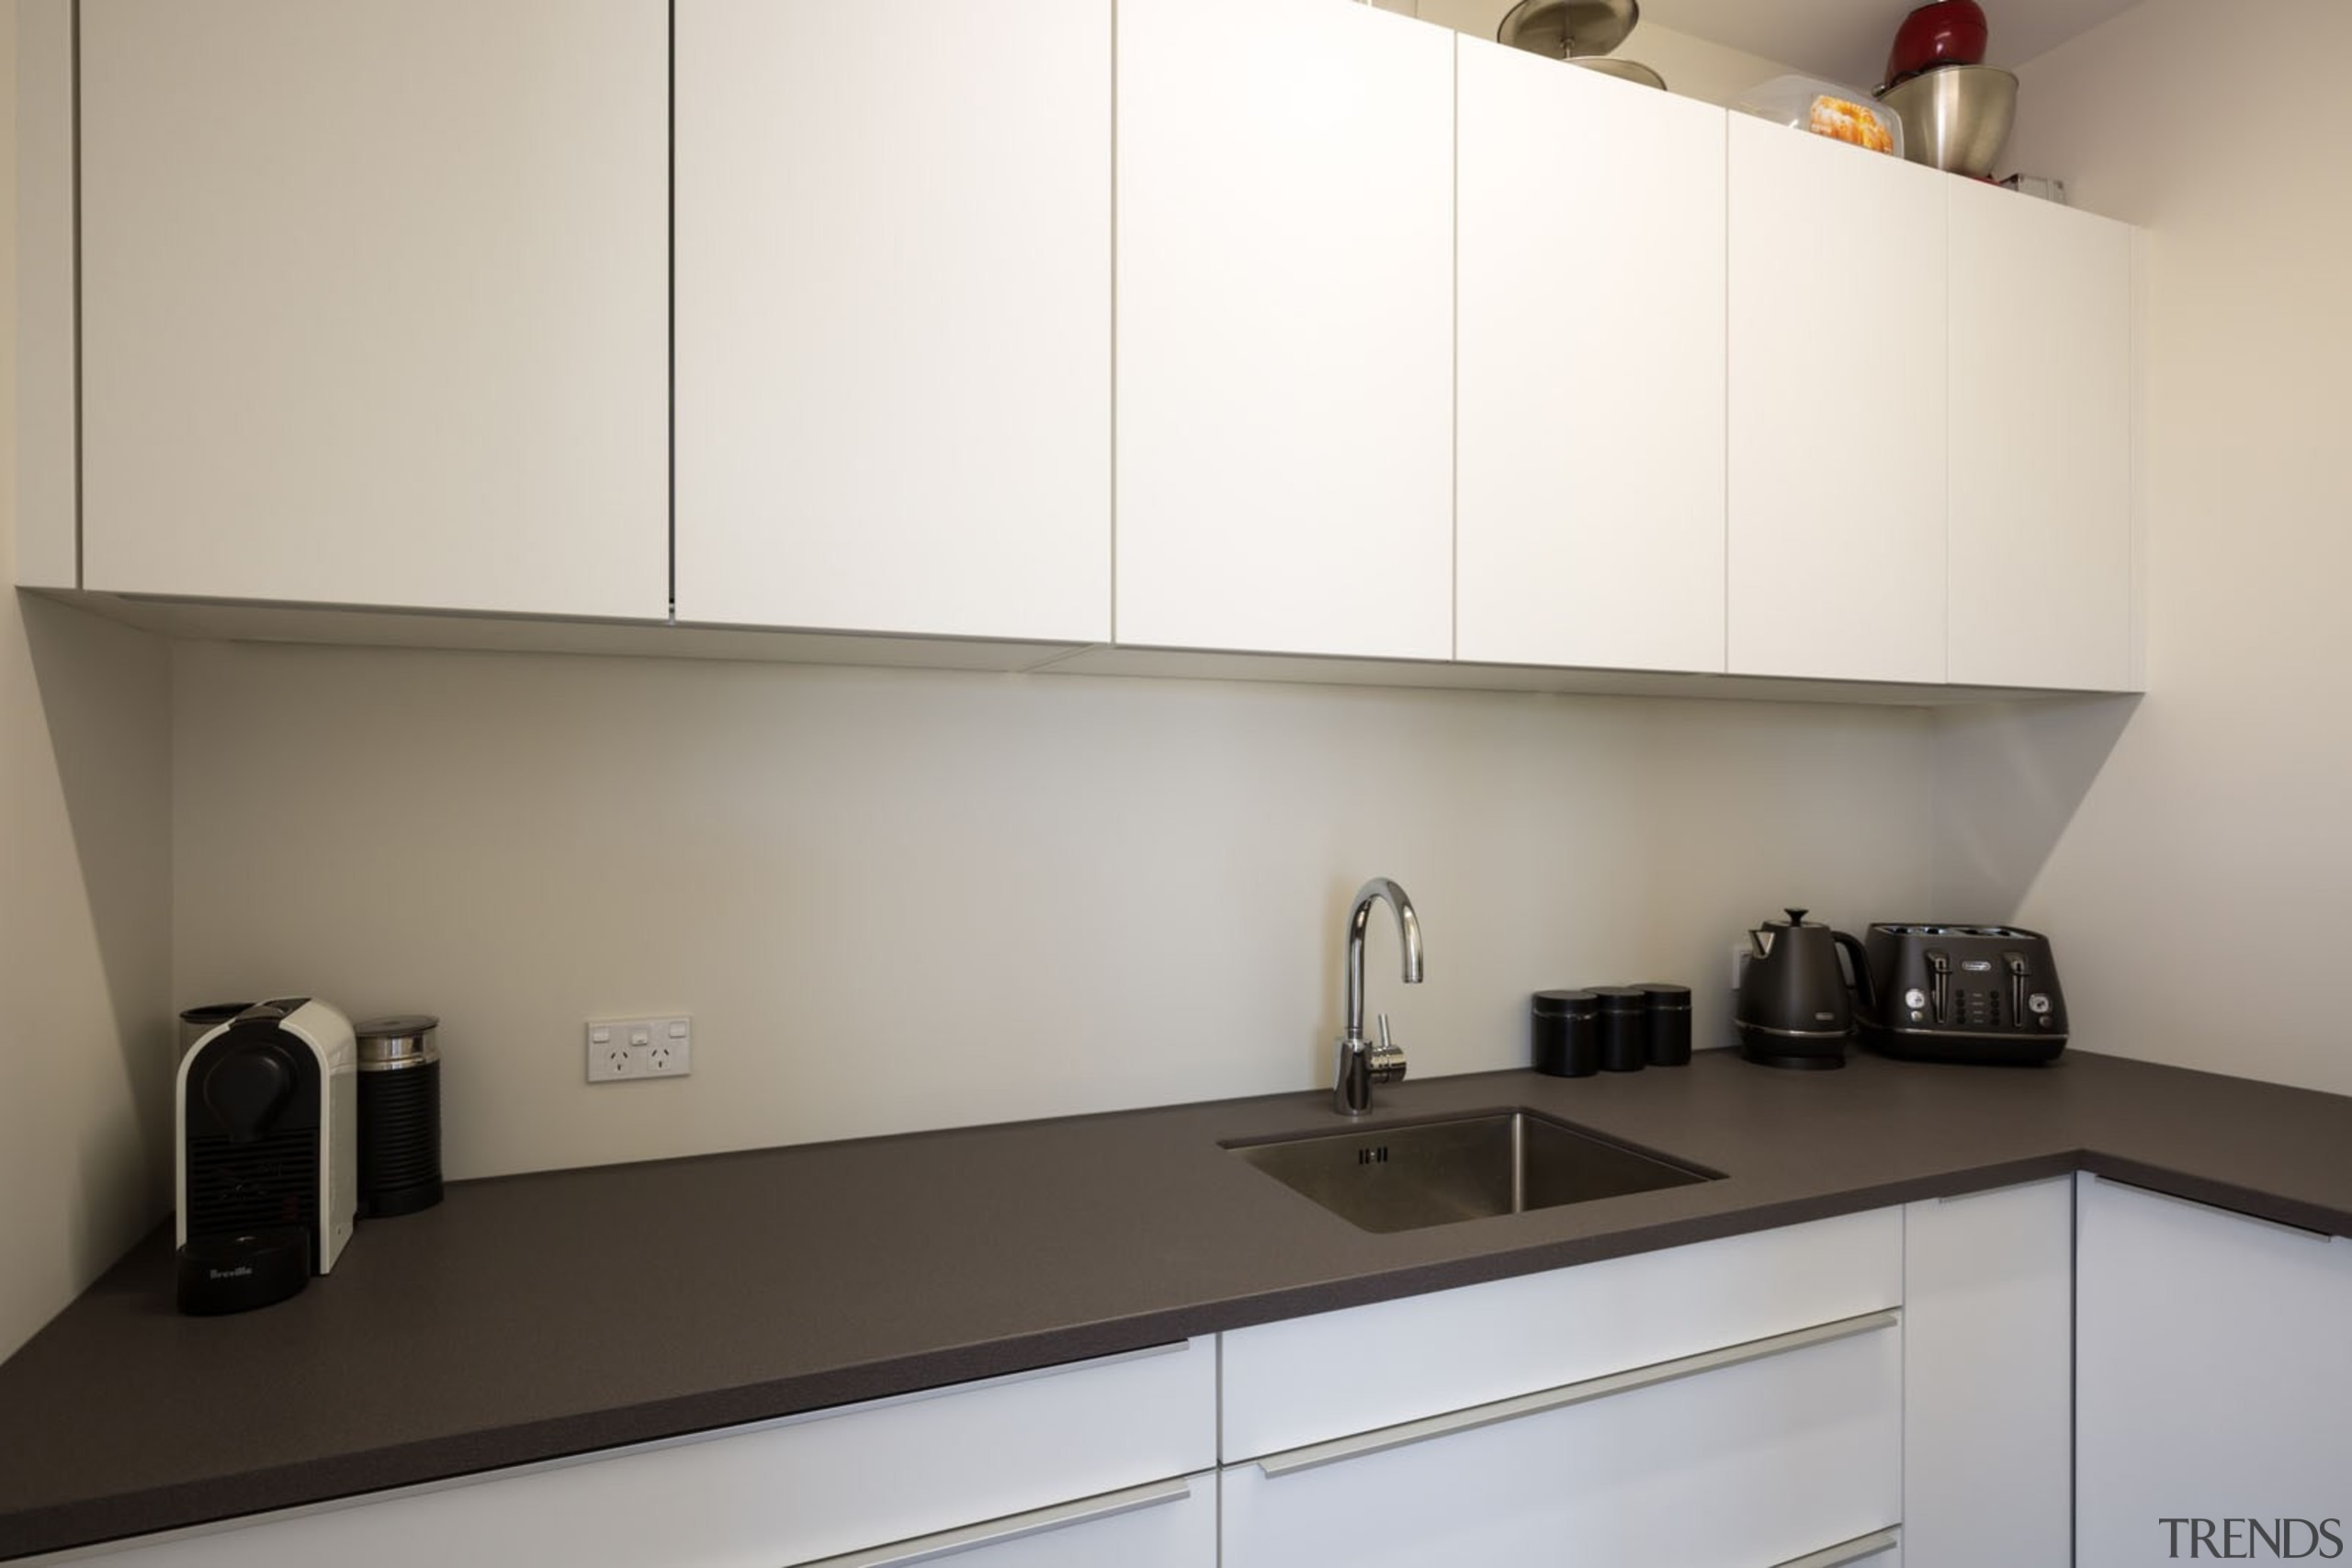 IMGL9869-21 - Dairy Flat Kitchen - Scullery - cabinetry, countertop, interior design, kitchen, product design, room, under cabinet lighting, white, gray